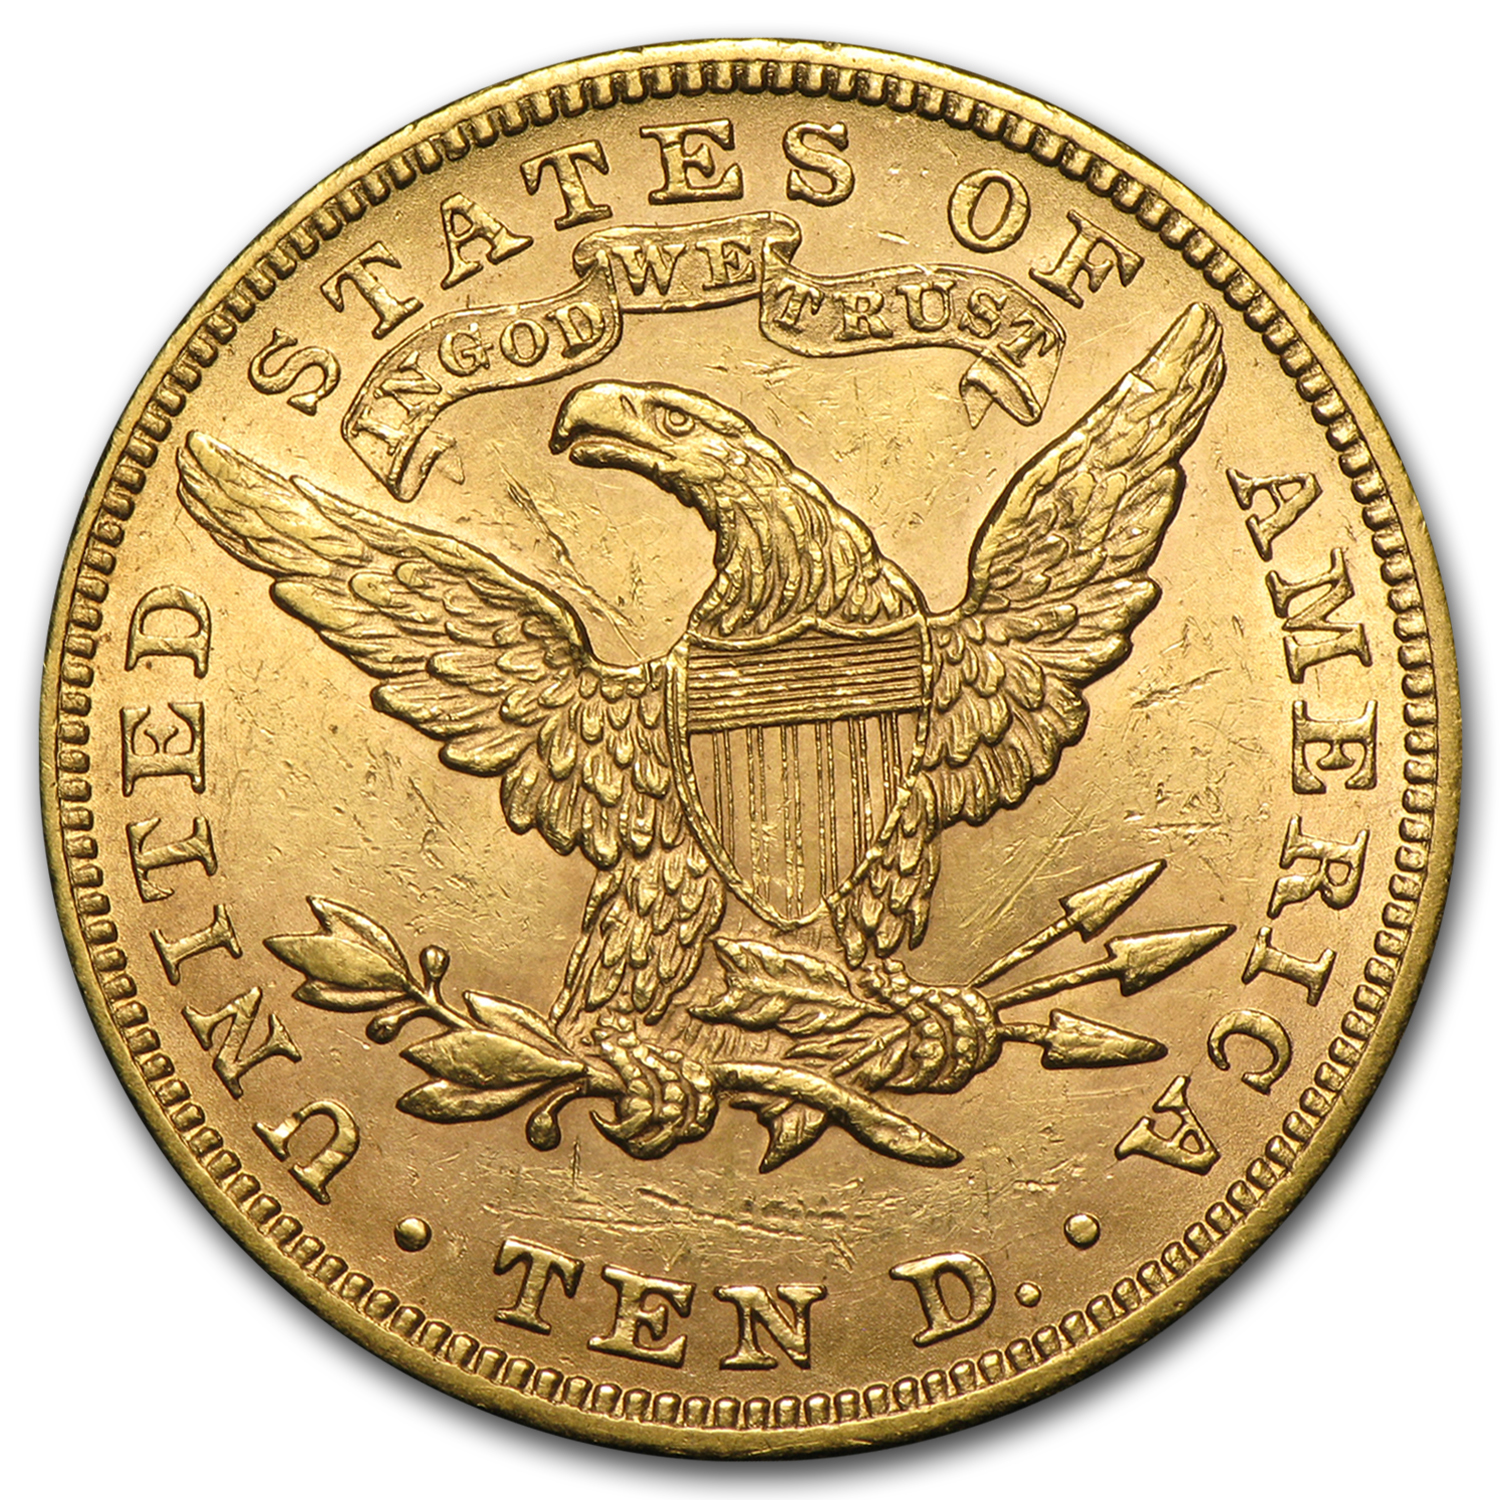 $10 Liberty Gold Eagle Almost Uncirculated